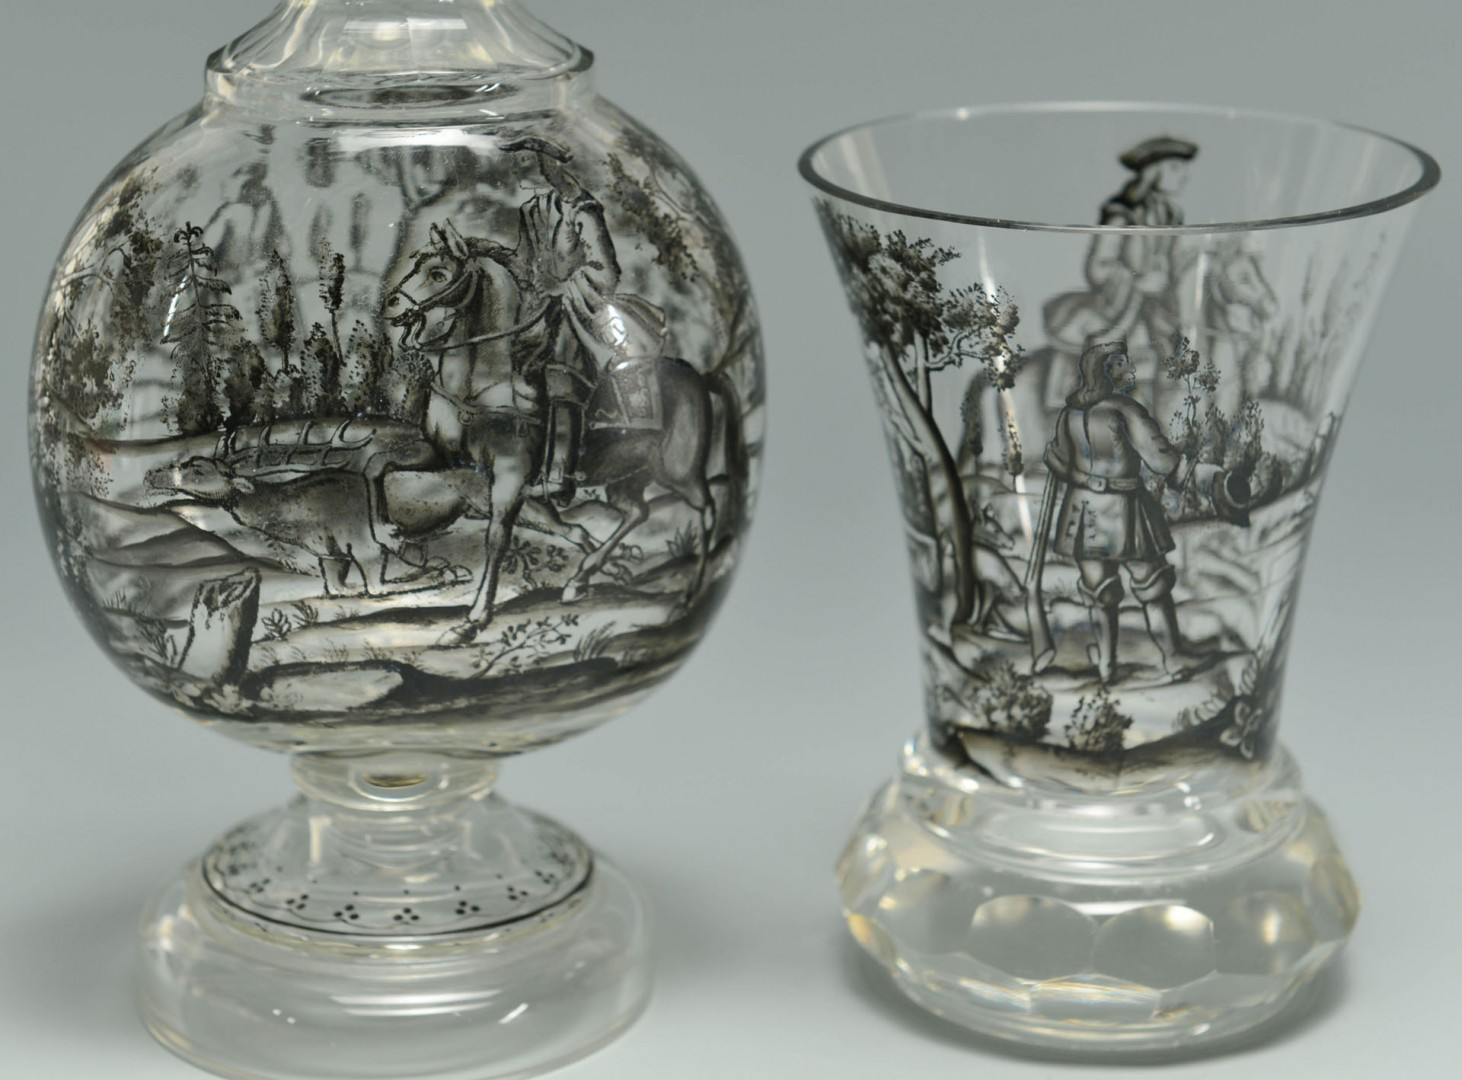 Lot 627: Grouping of 4 Glass Vases